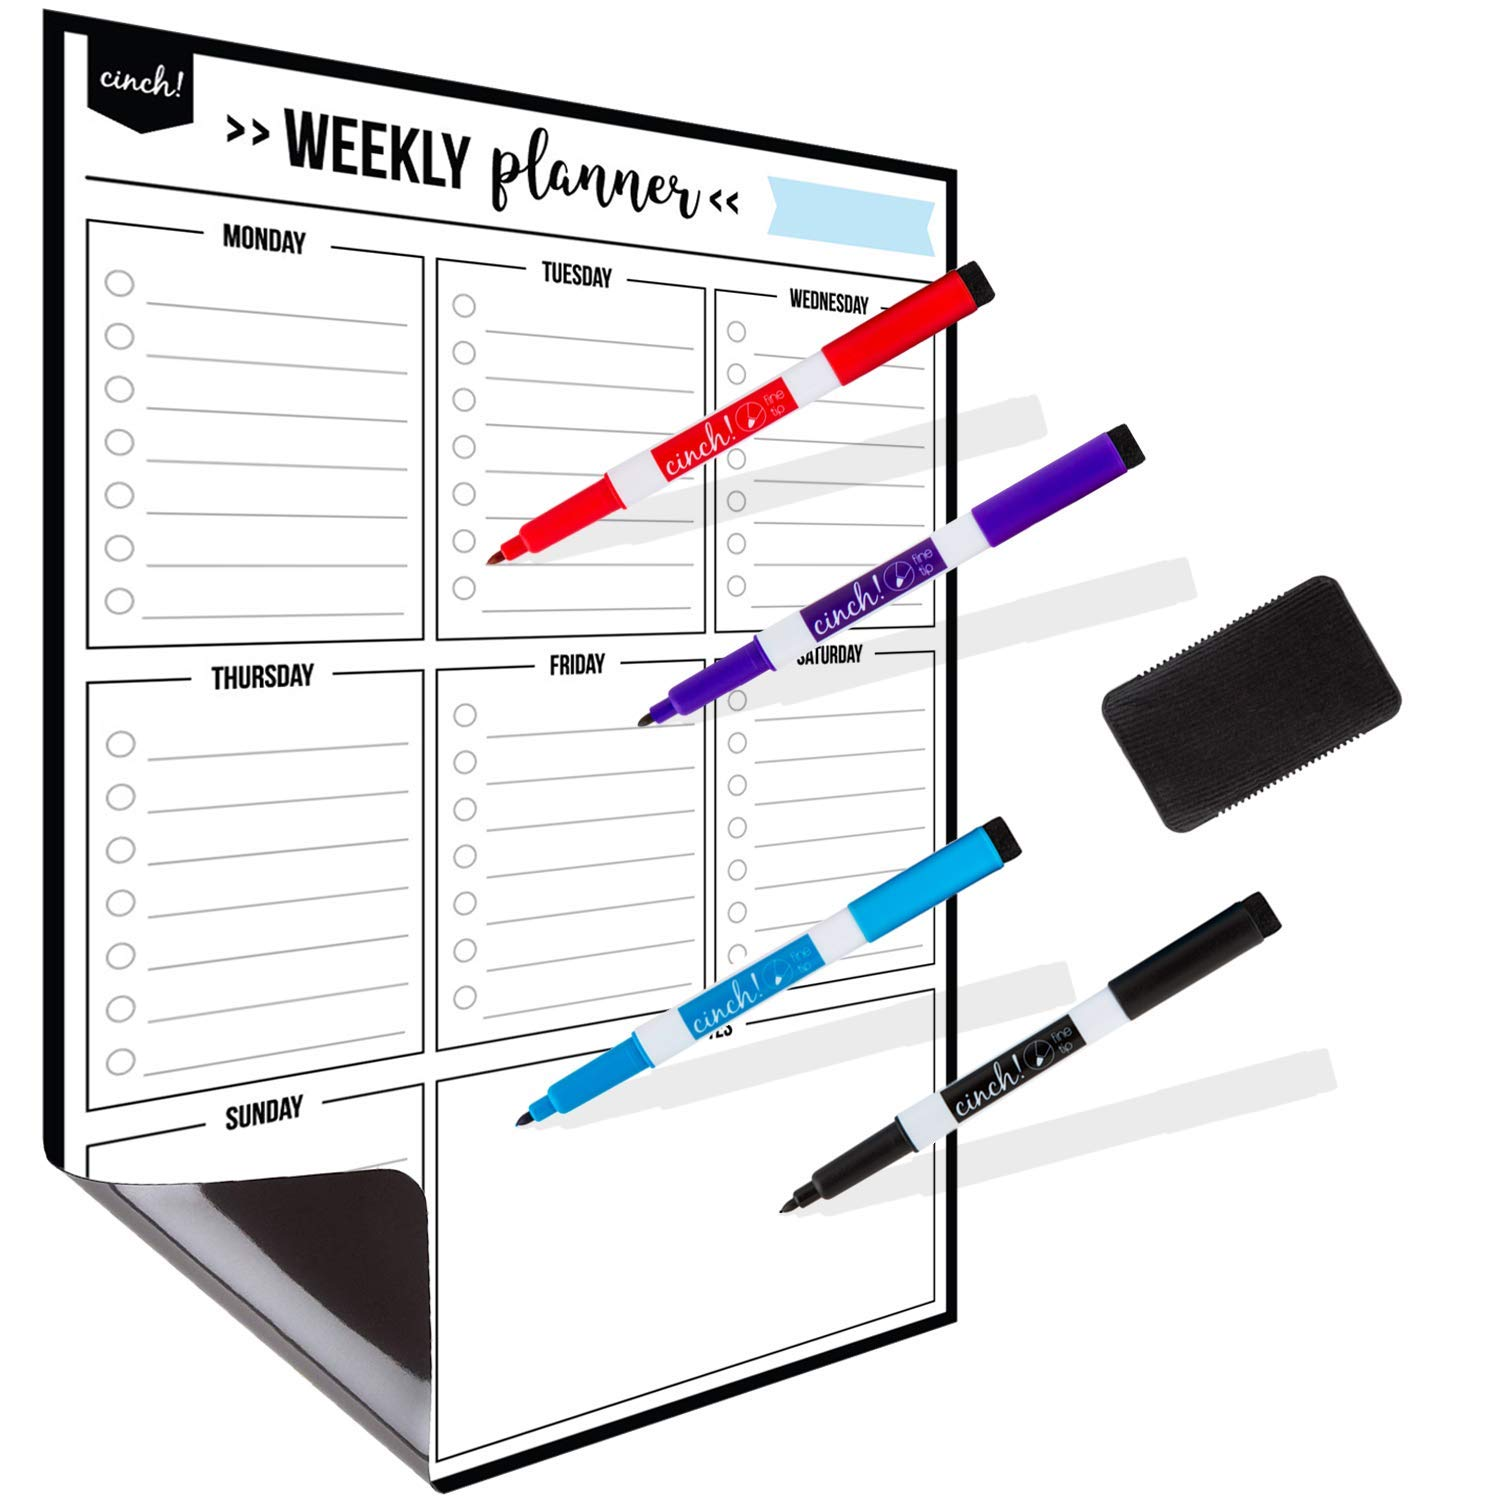 Magnetic Dry Erase Weekly Calendar for Fridge: with Stain Resistant Technology - 17x12'' - 4 Fine Tip Markers and Large Eraser with Magnets - Whiteboard Organizer Planner: Refrigerator White Board by cinch!